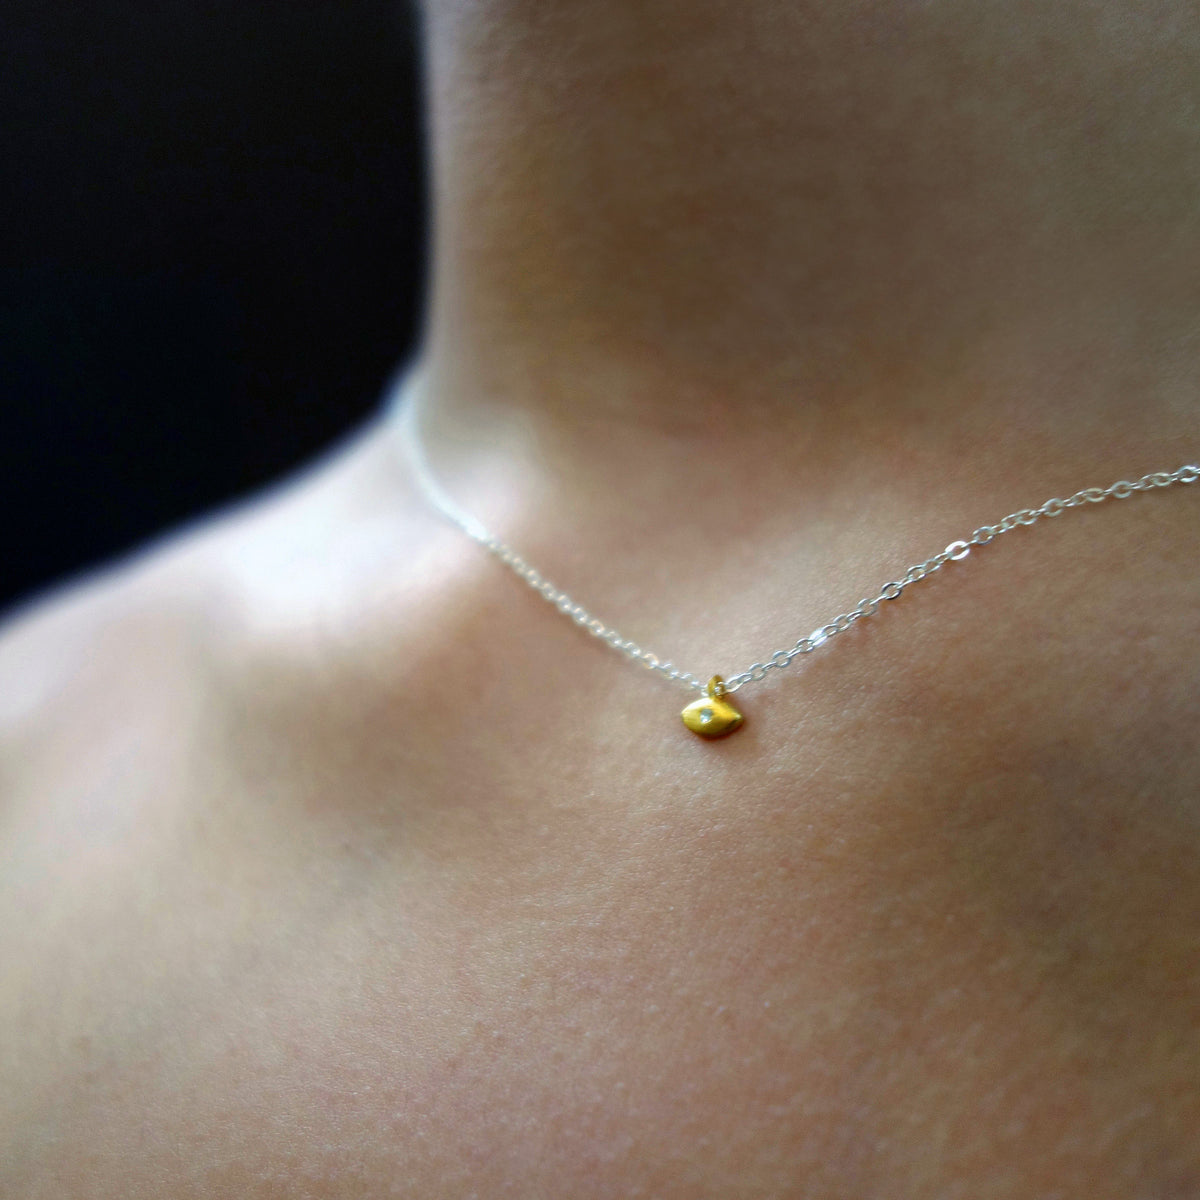 FEATURED PIECE: I Can See Clearly Now (diamond in golden eye necklace)